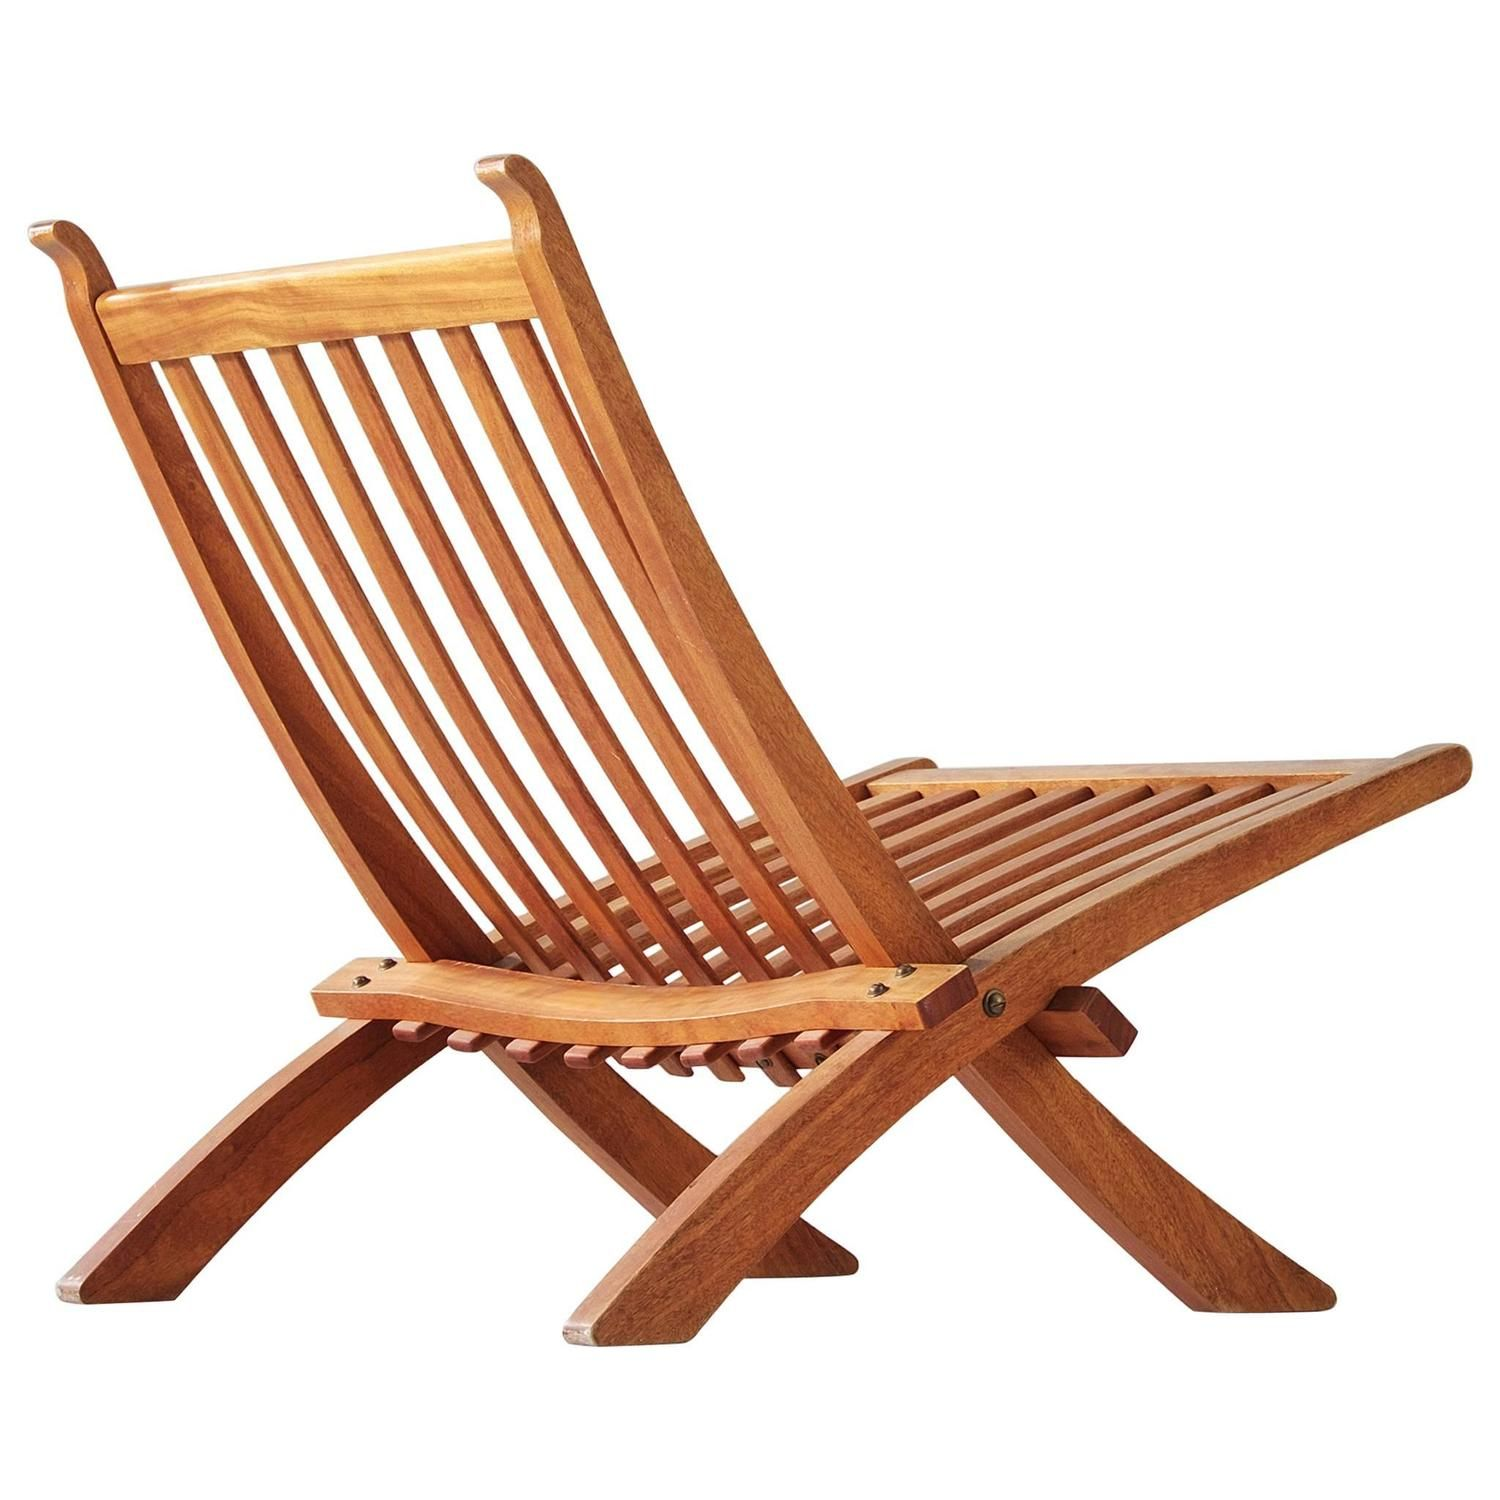 Hans Wegner Rare Folding Chair In Mahogany 1 Folding Chair Wegner